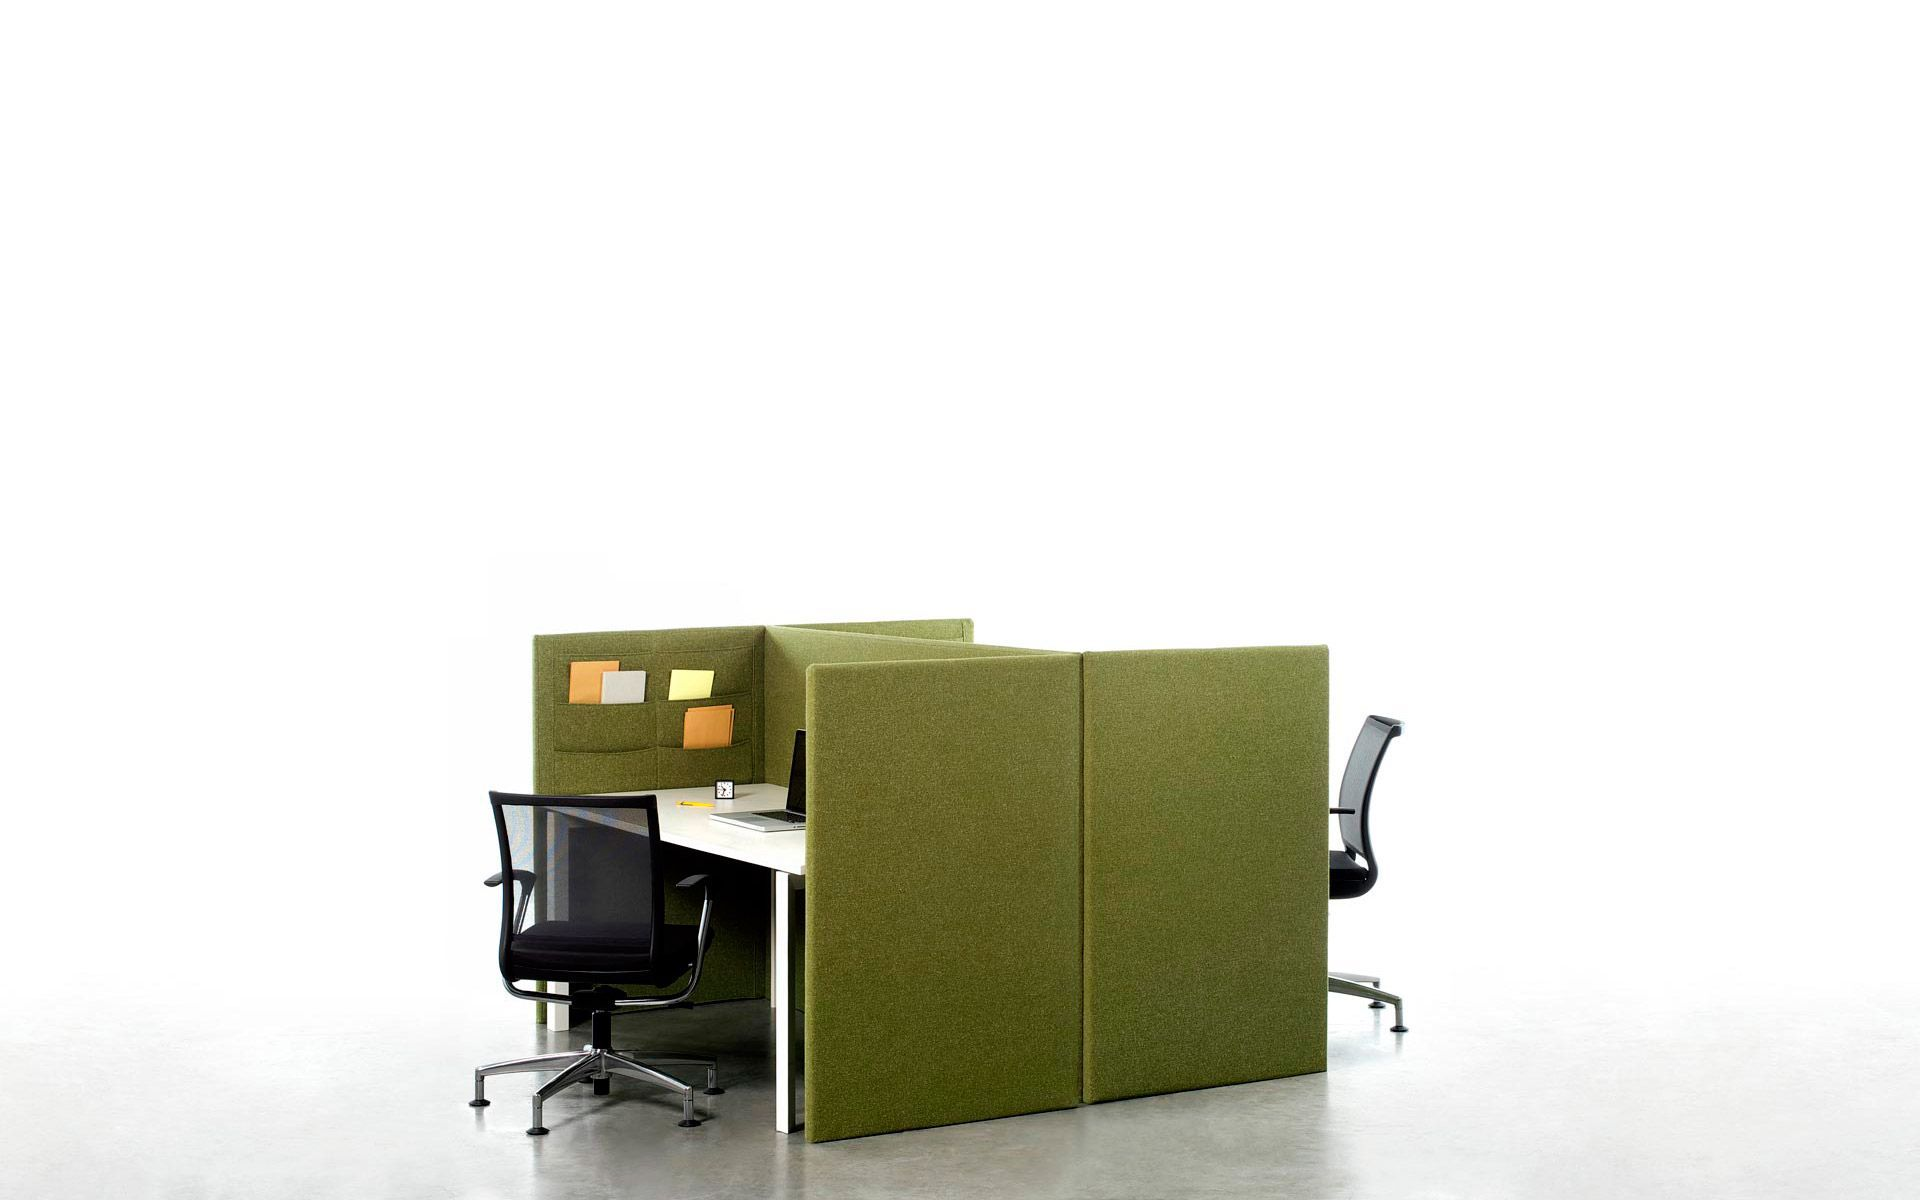 A flexible, practical, fun office partition concept